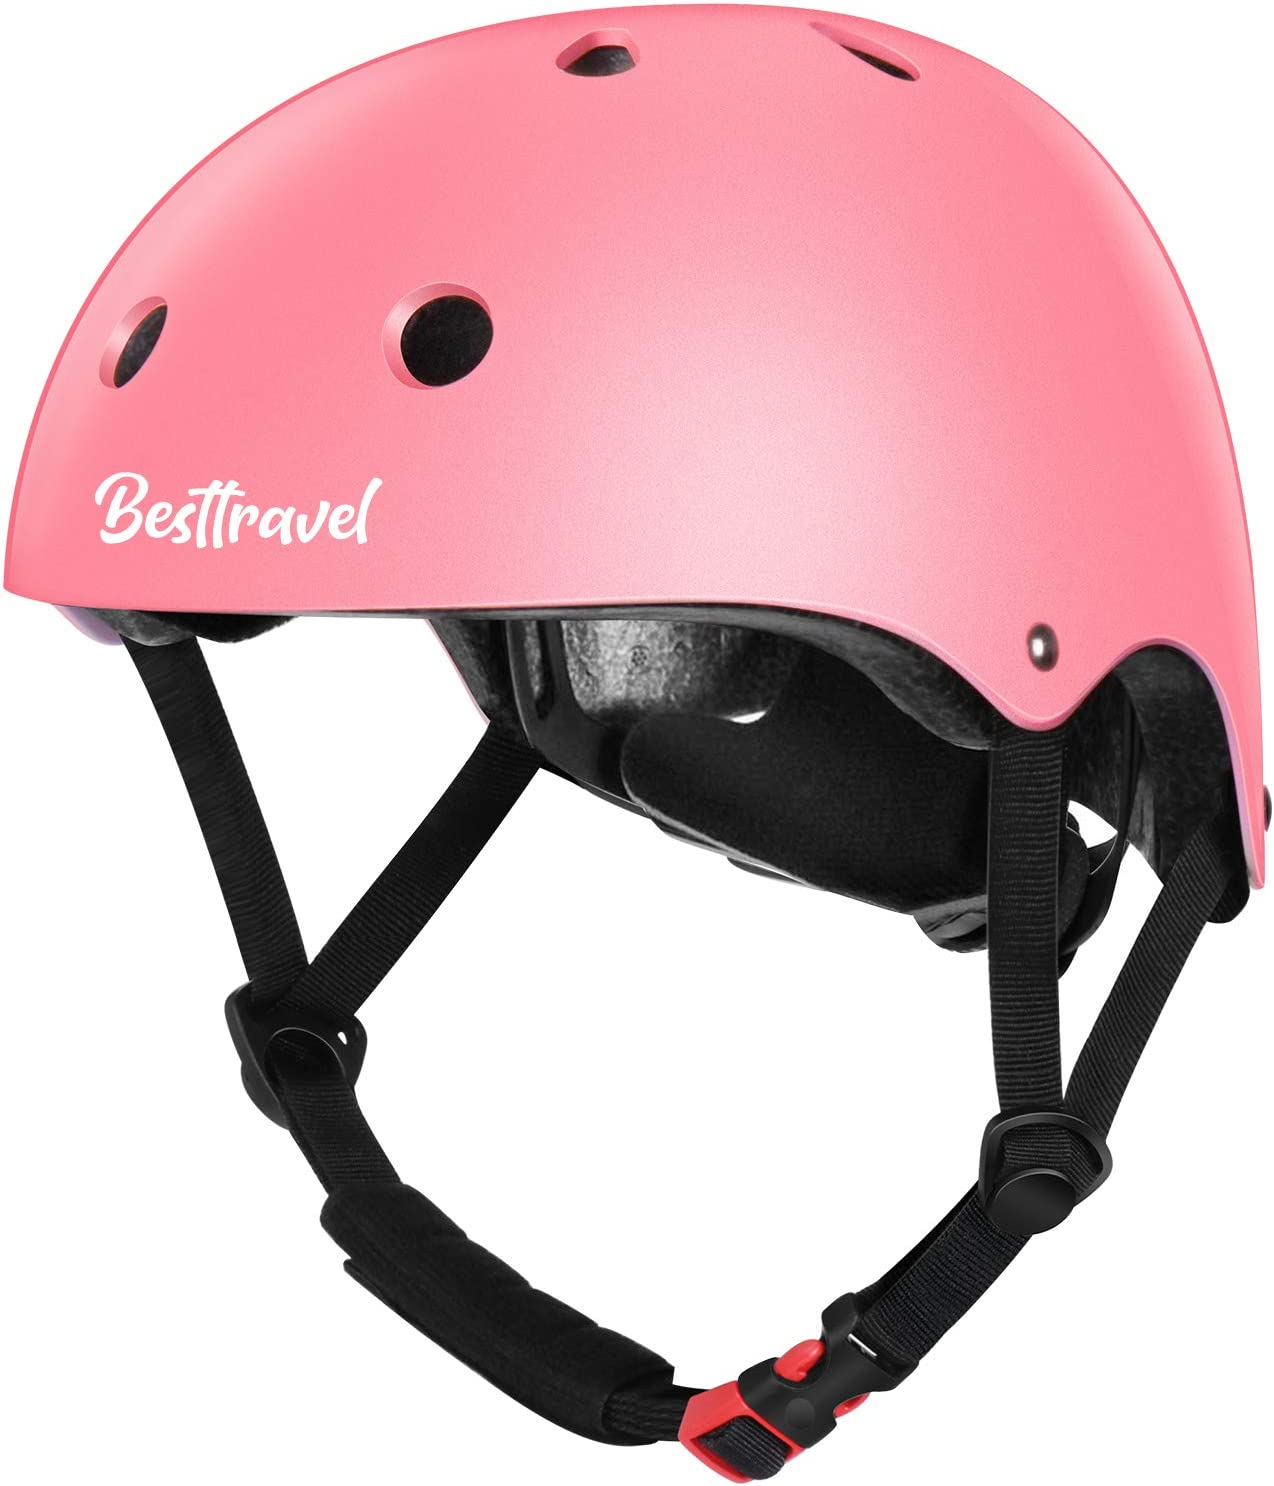 Besttravel Kids Helmets, Toddler Helmets Adjustable Toddler Bike Helmet Ages 3-8 Years Old Boys Girls Multi-Sports Safety Cycling Skating Scooter Helmet CPSC Certified